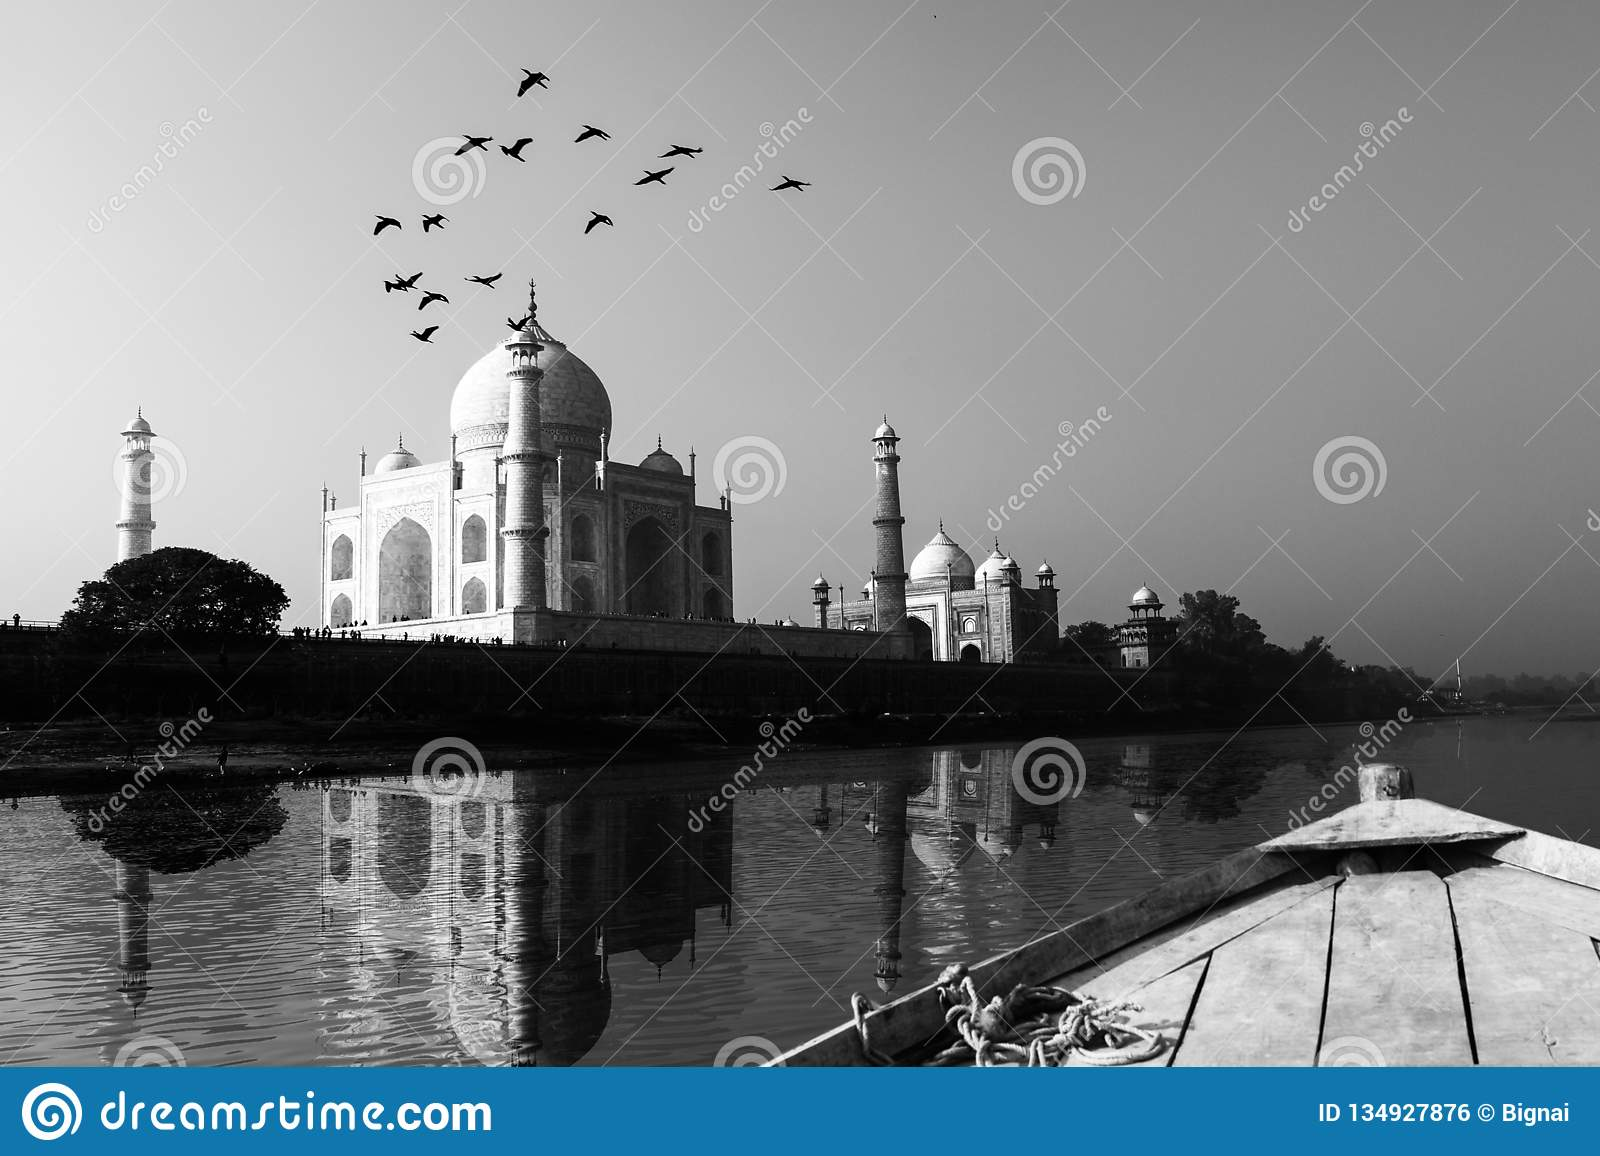 Taj Mahal reflected in Yamuna River view from wooden boat in black and white.